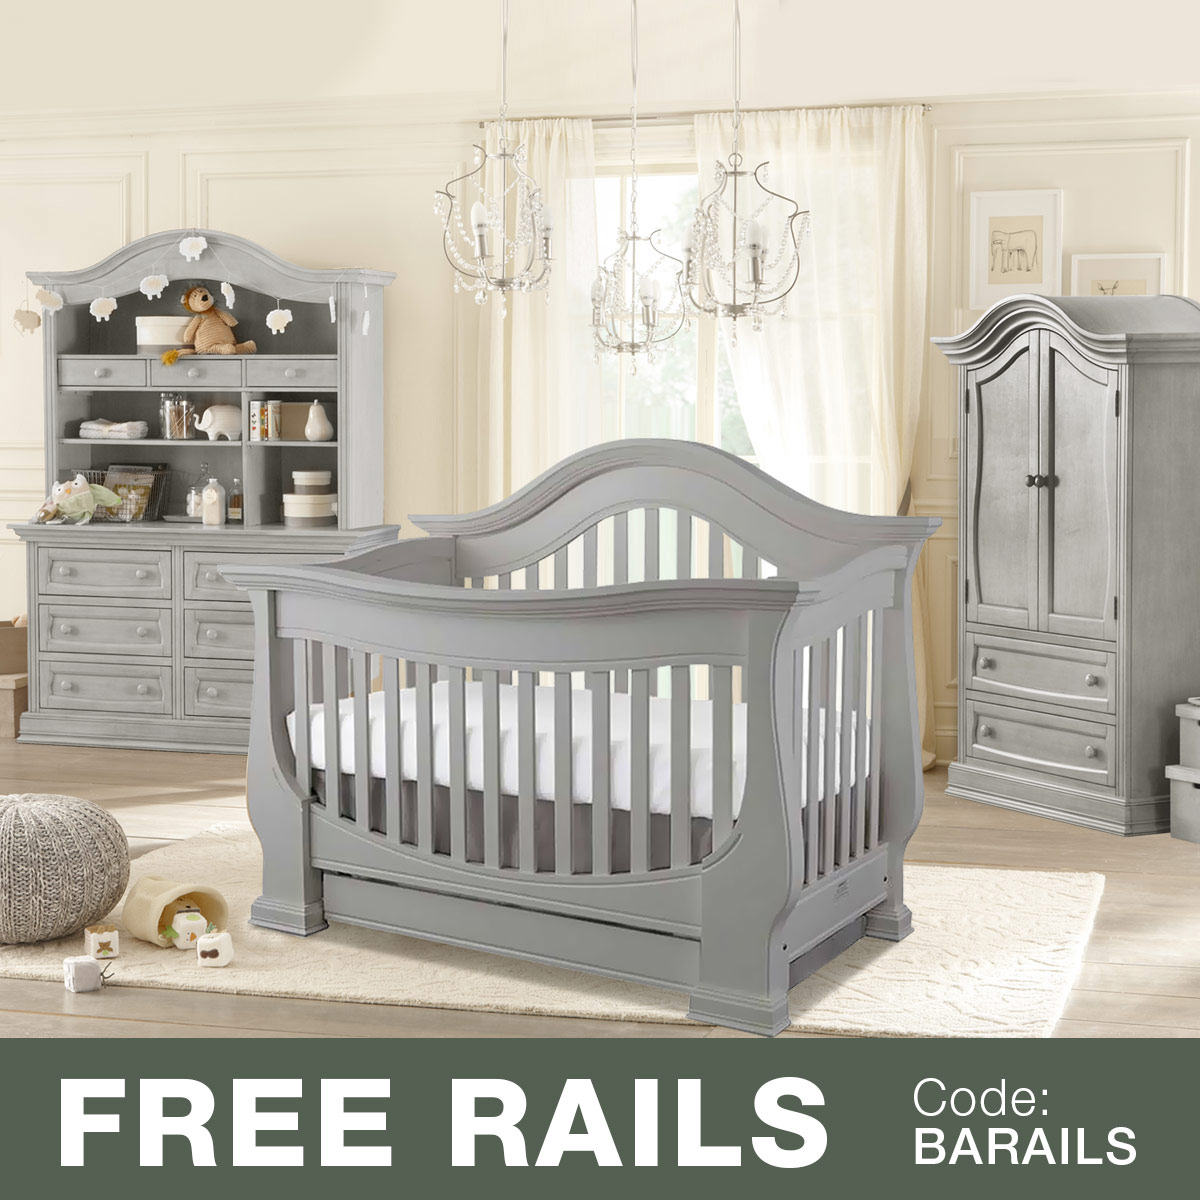 Superbe Baby Appleseed 4 Piece Nursery Set   Davenport 3 In 1 Convertible Crib,  Double Dresser With Hutch And Armoire In Slate FREE SHIPPING